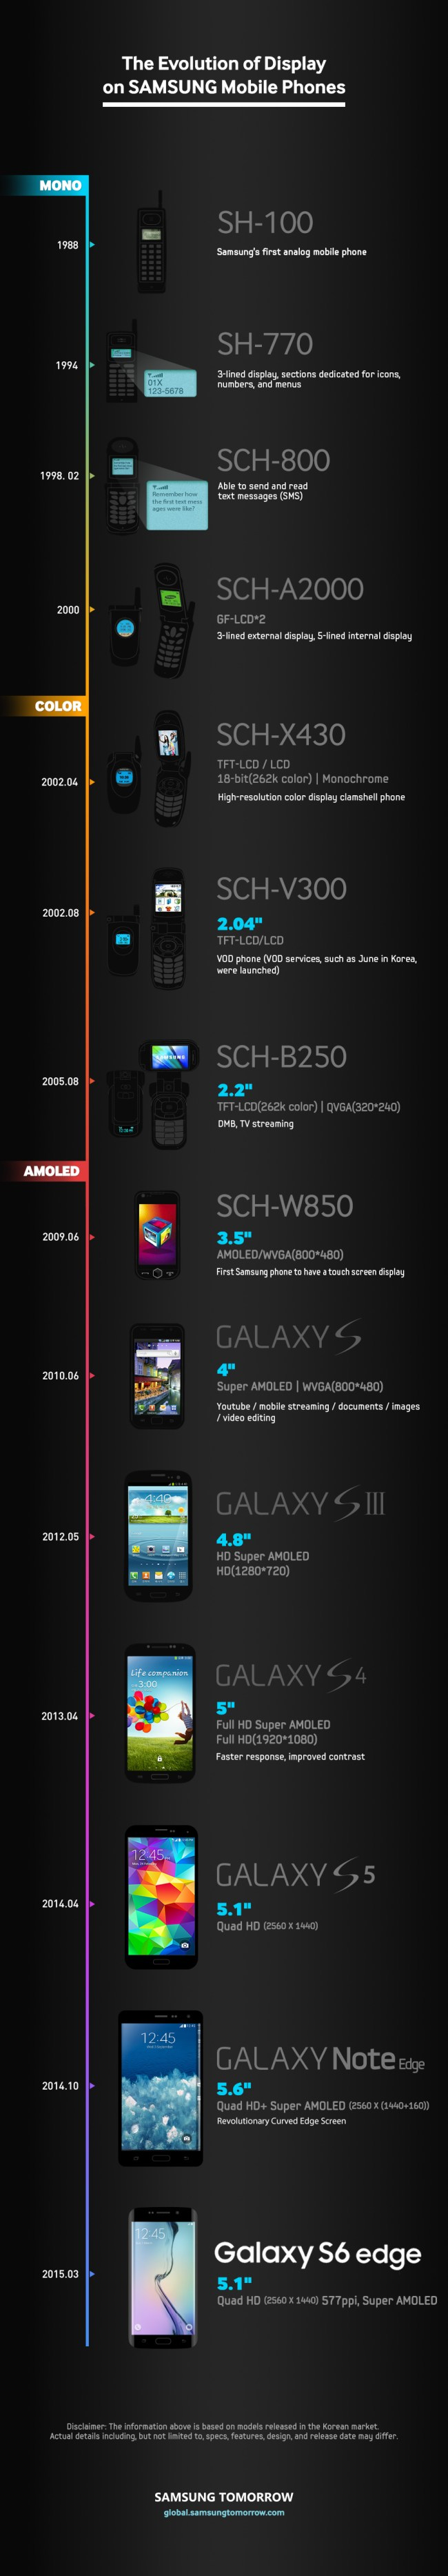 Evolution-of-Smartphone_Display